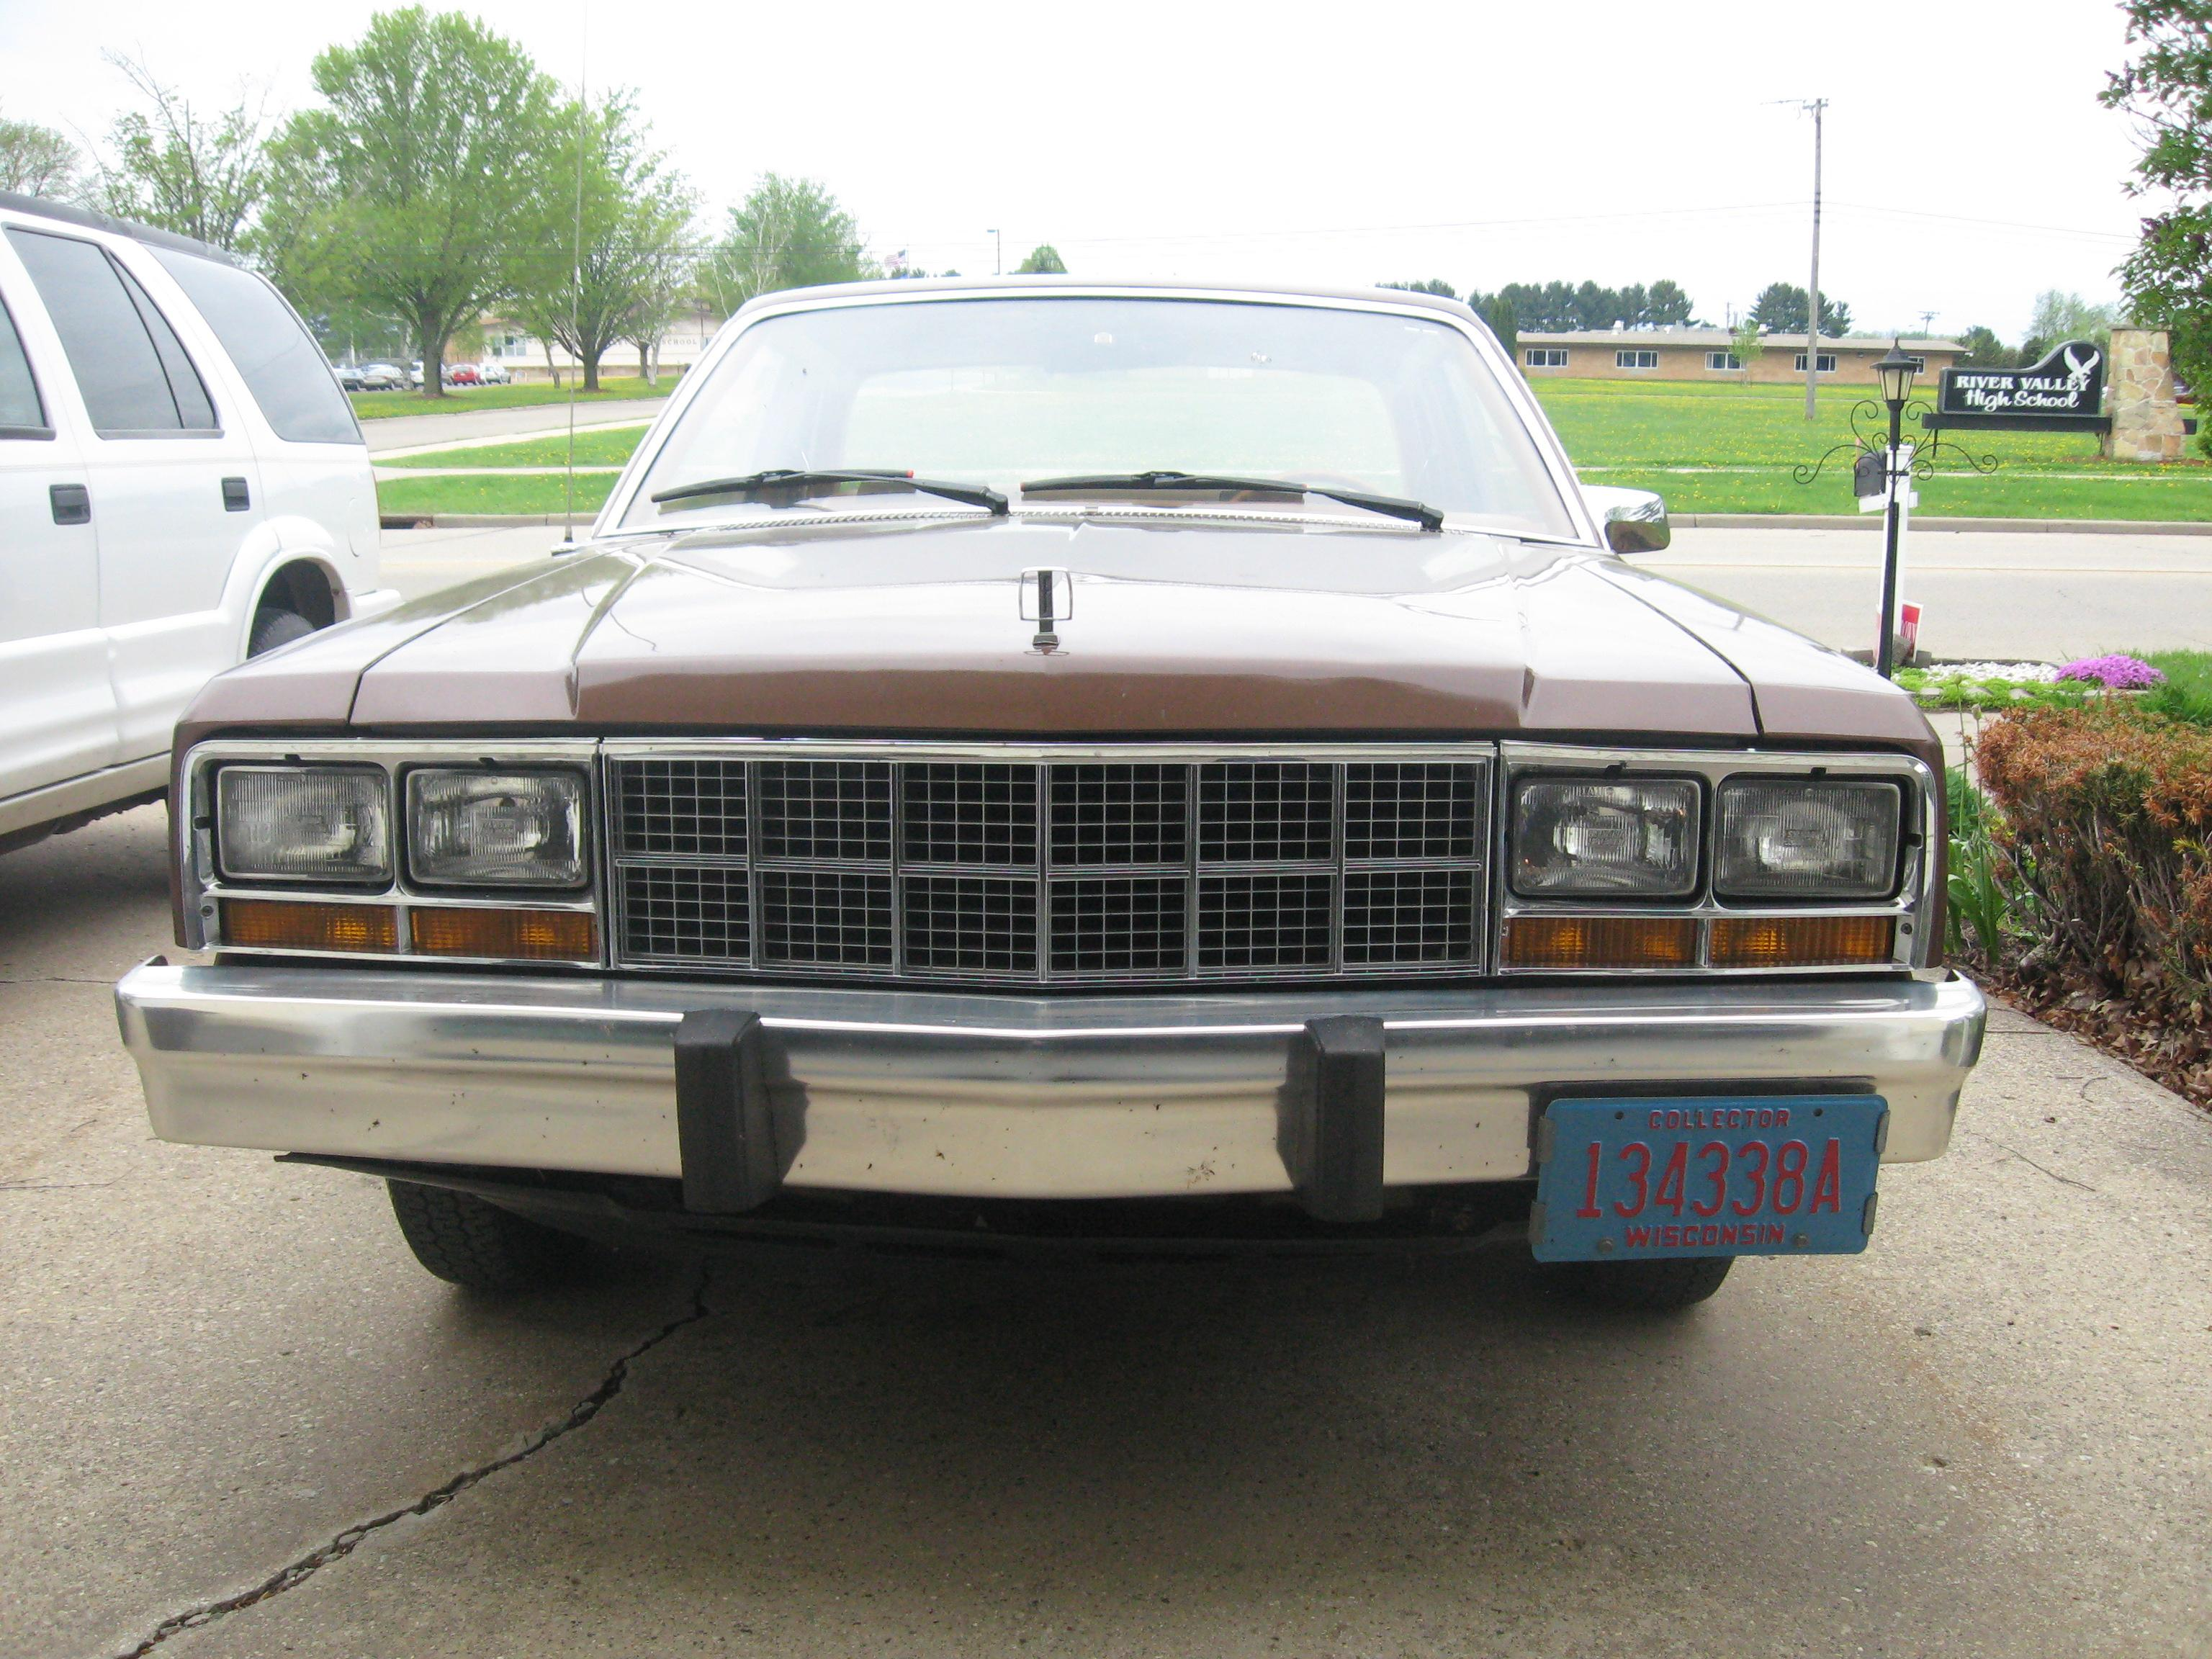 Falcon1964's 1980 Ford Fairmont